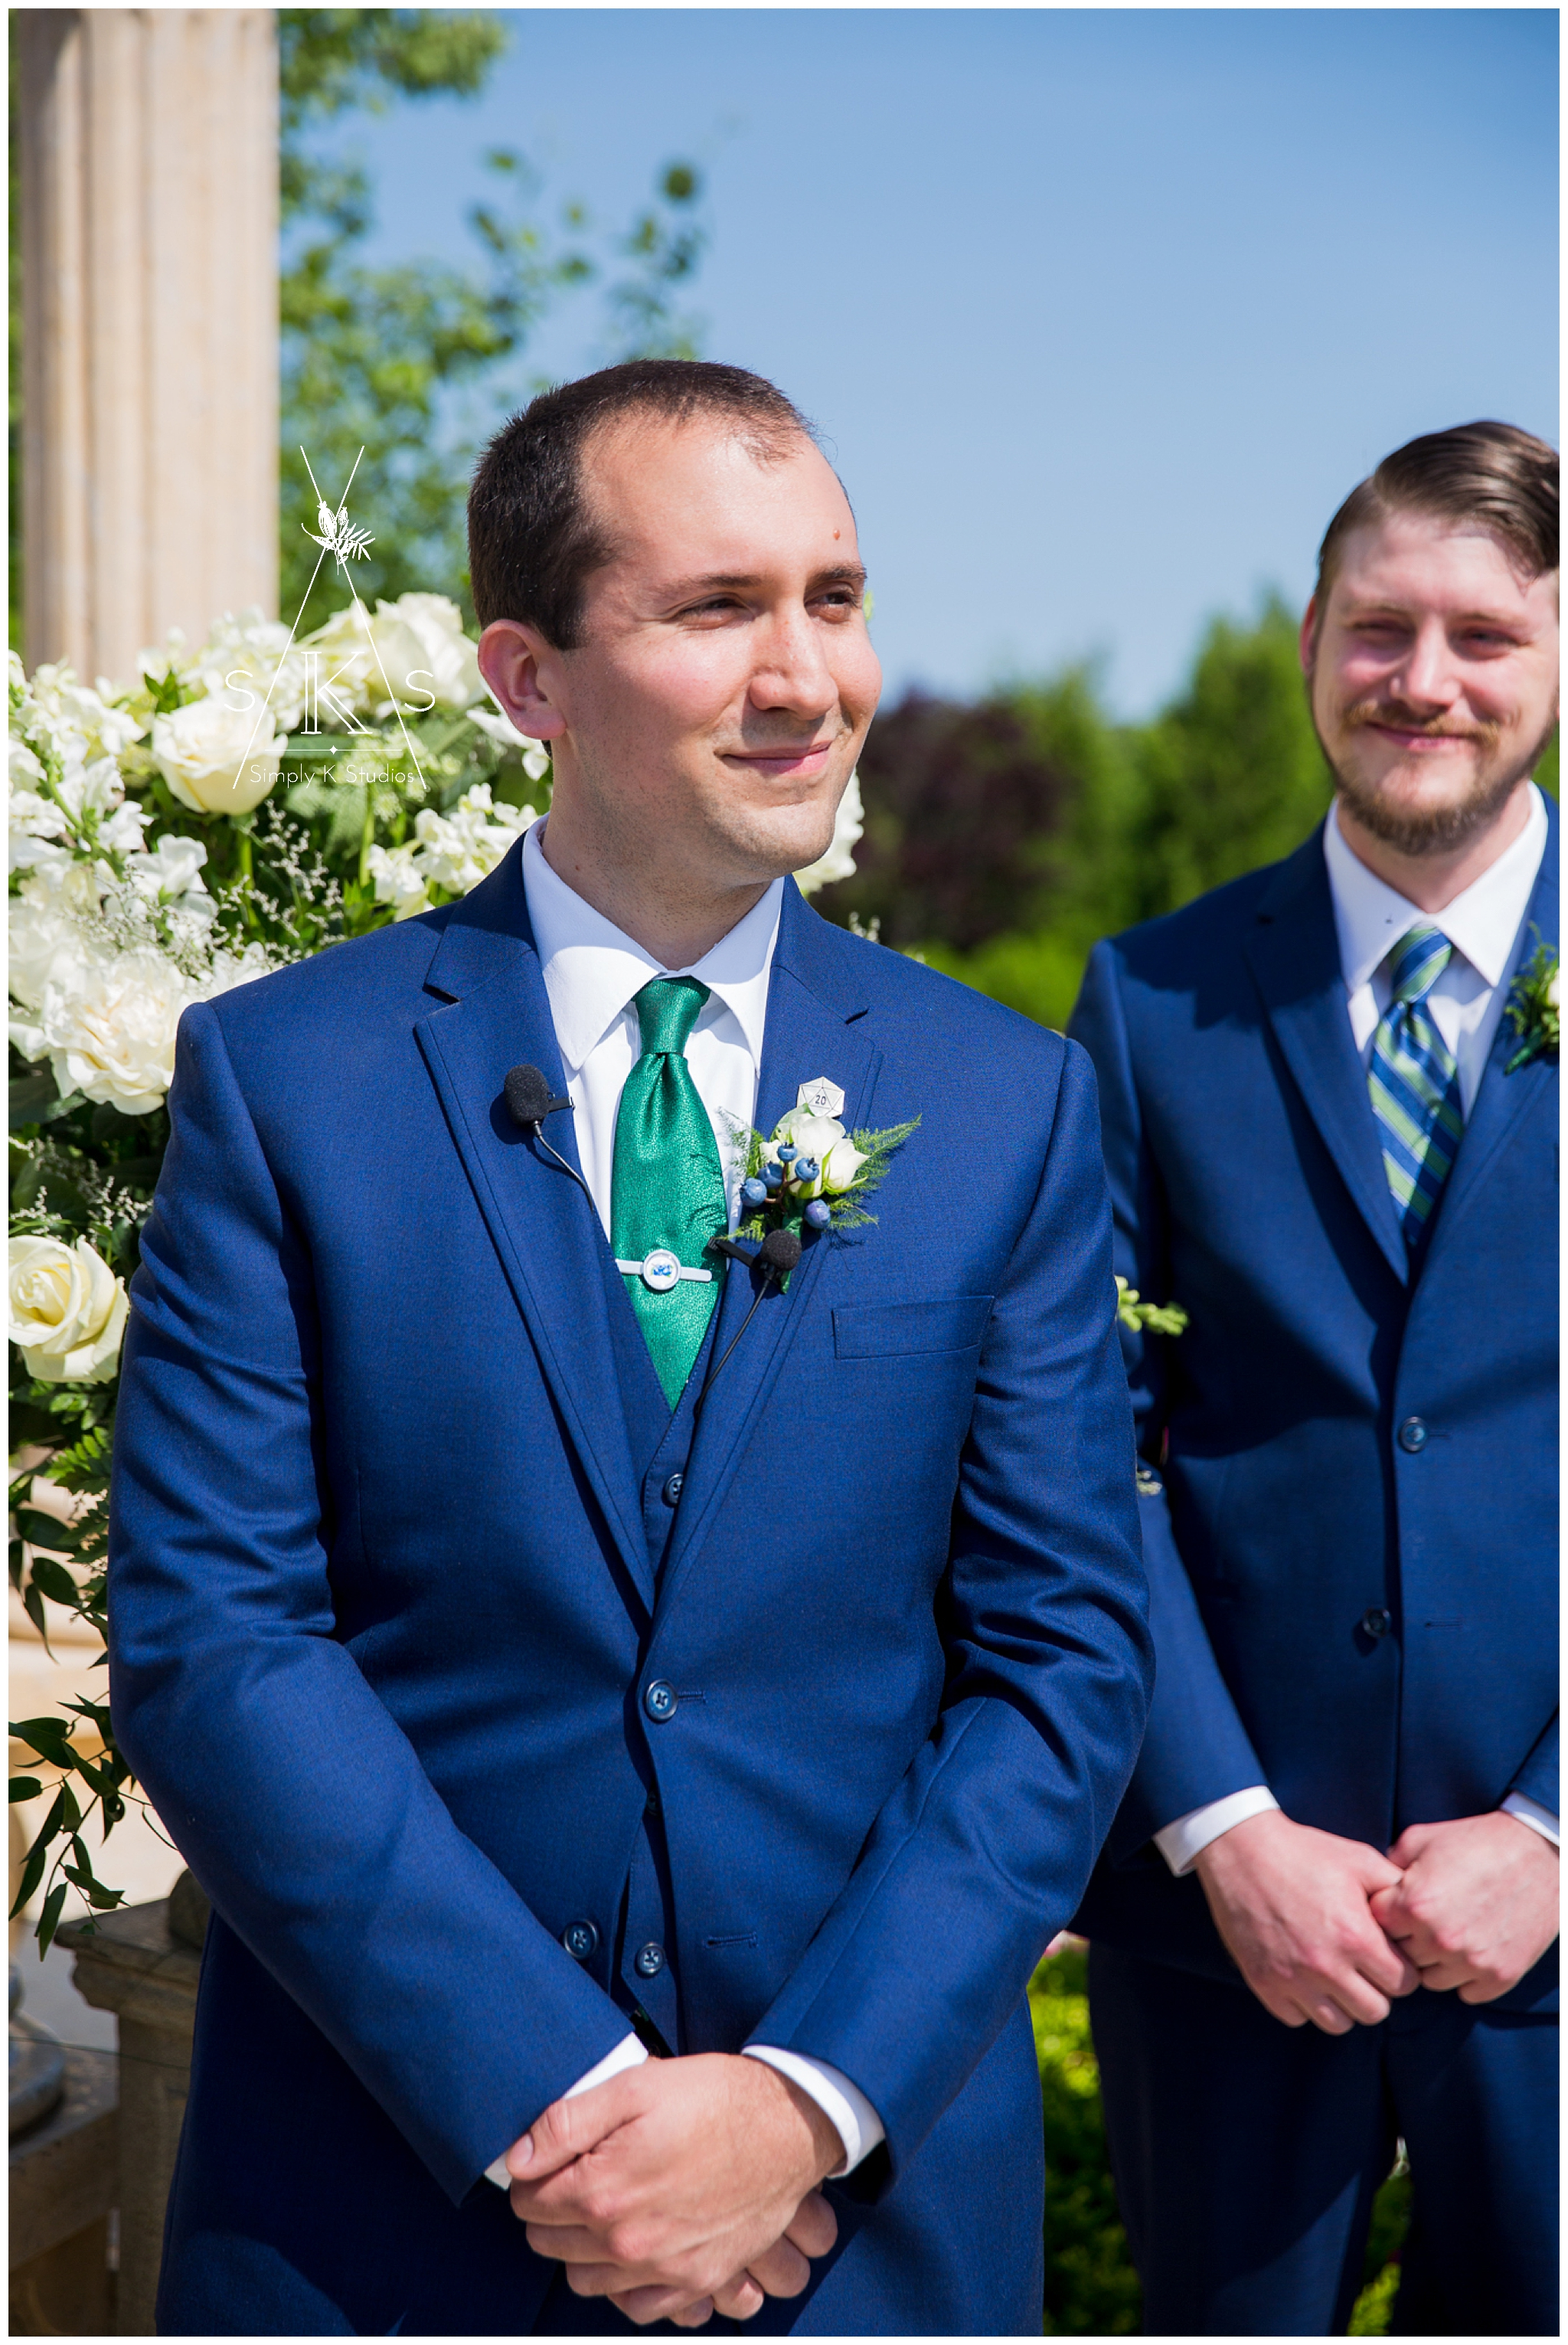 29 Groom at a Ceremony.jpg